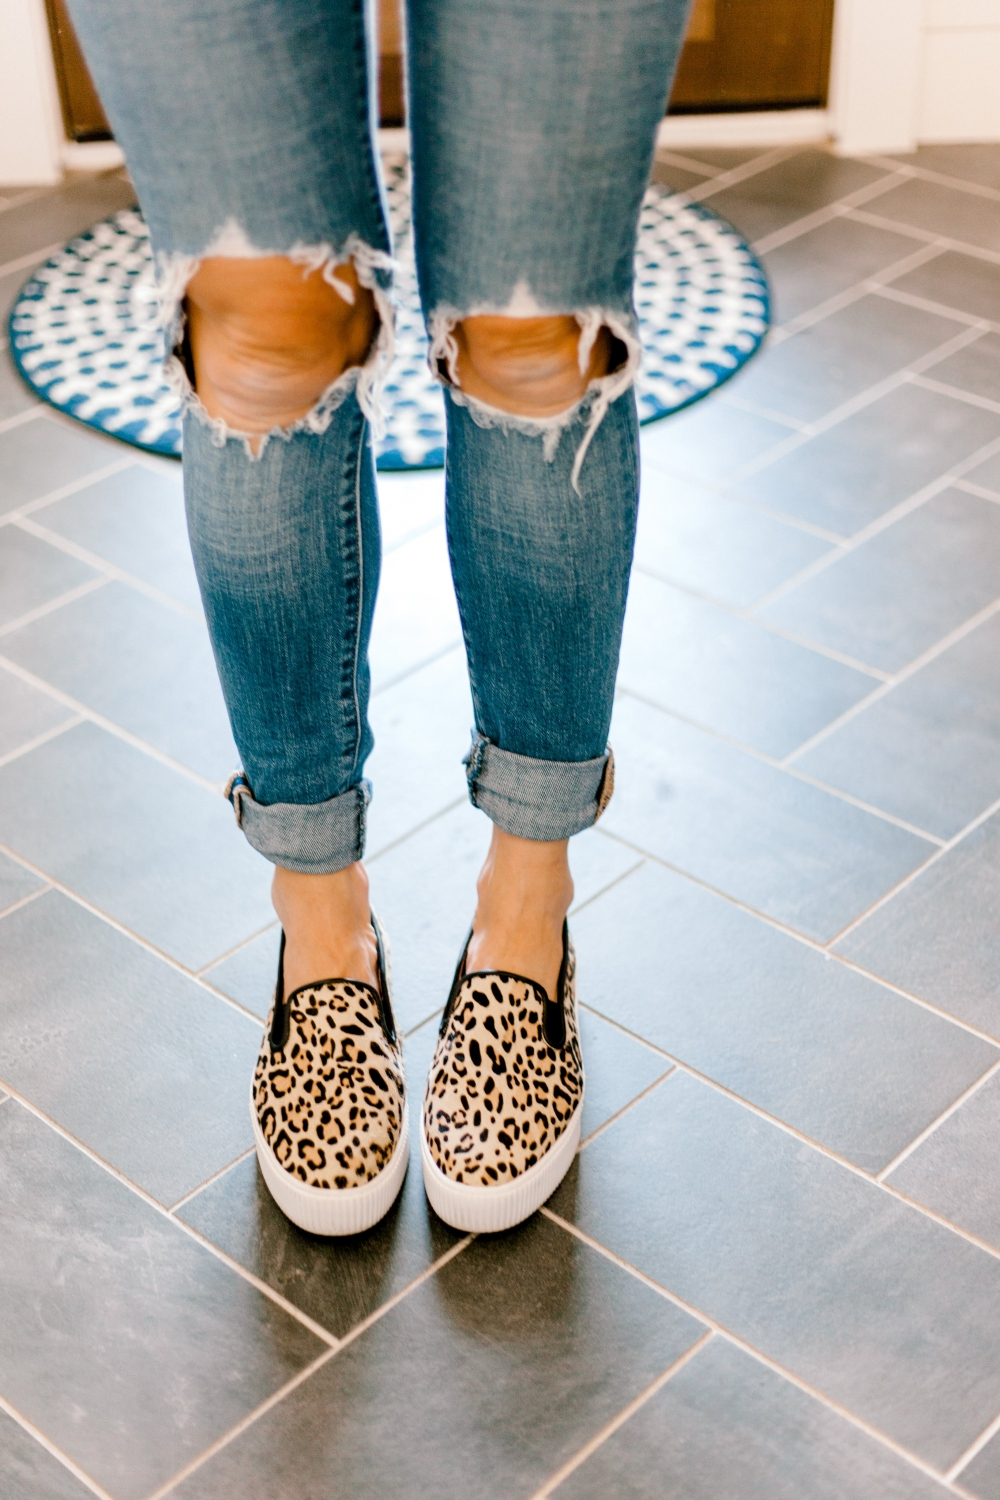 ce07e91f185 it d have to be leopard print shoes. And it s a two-parter  One